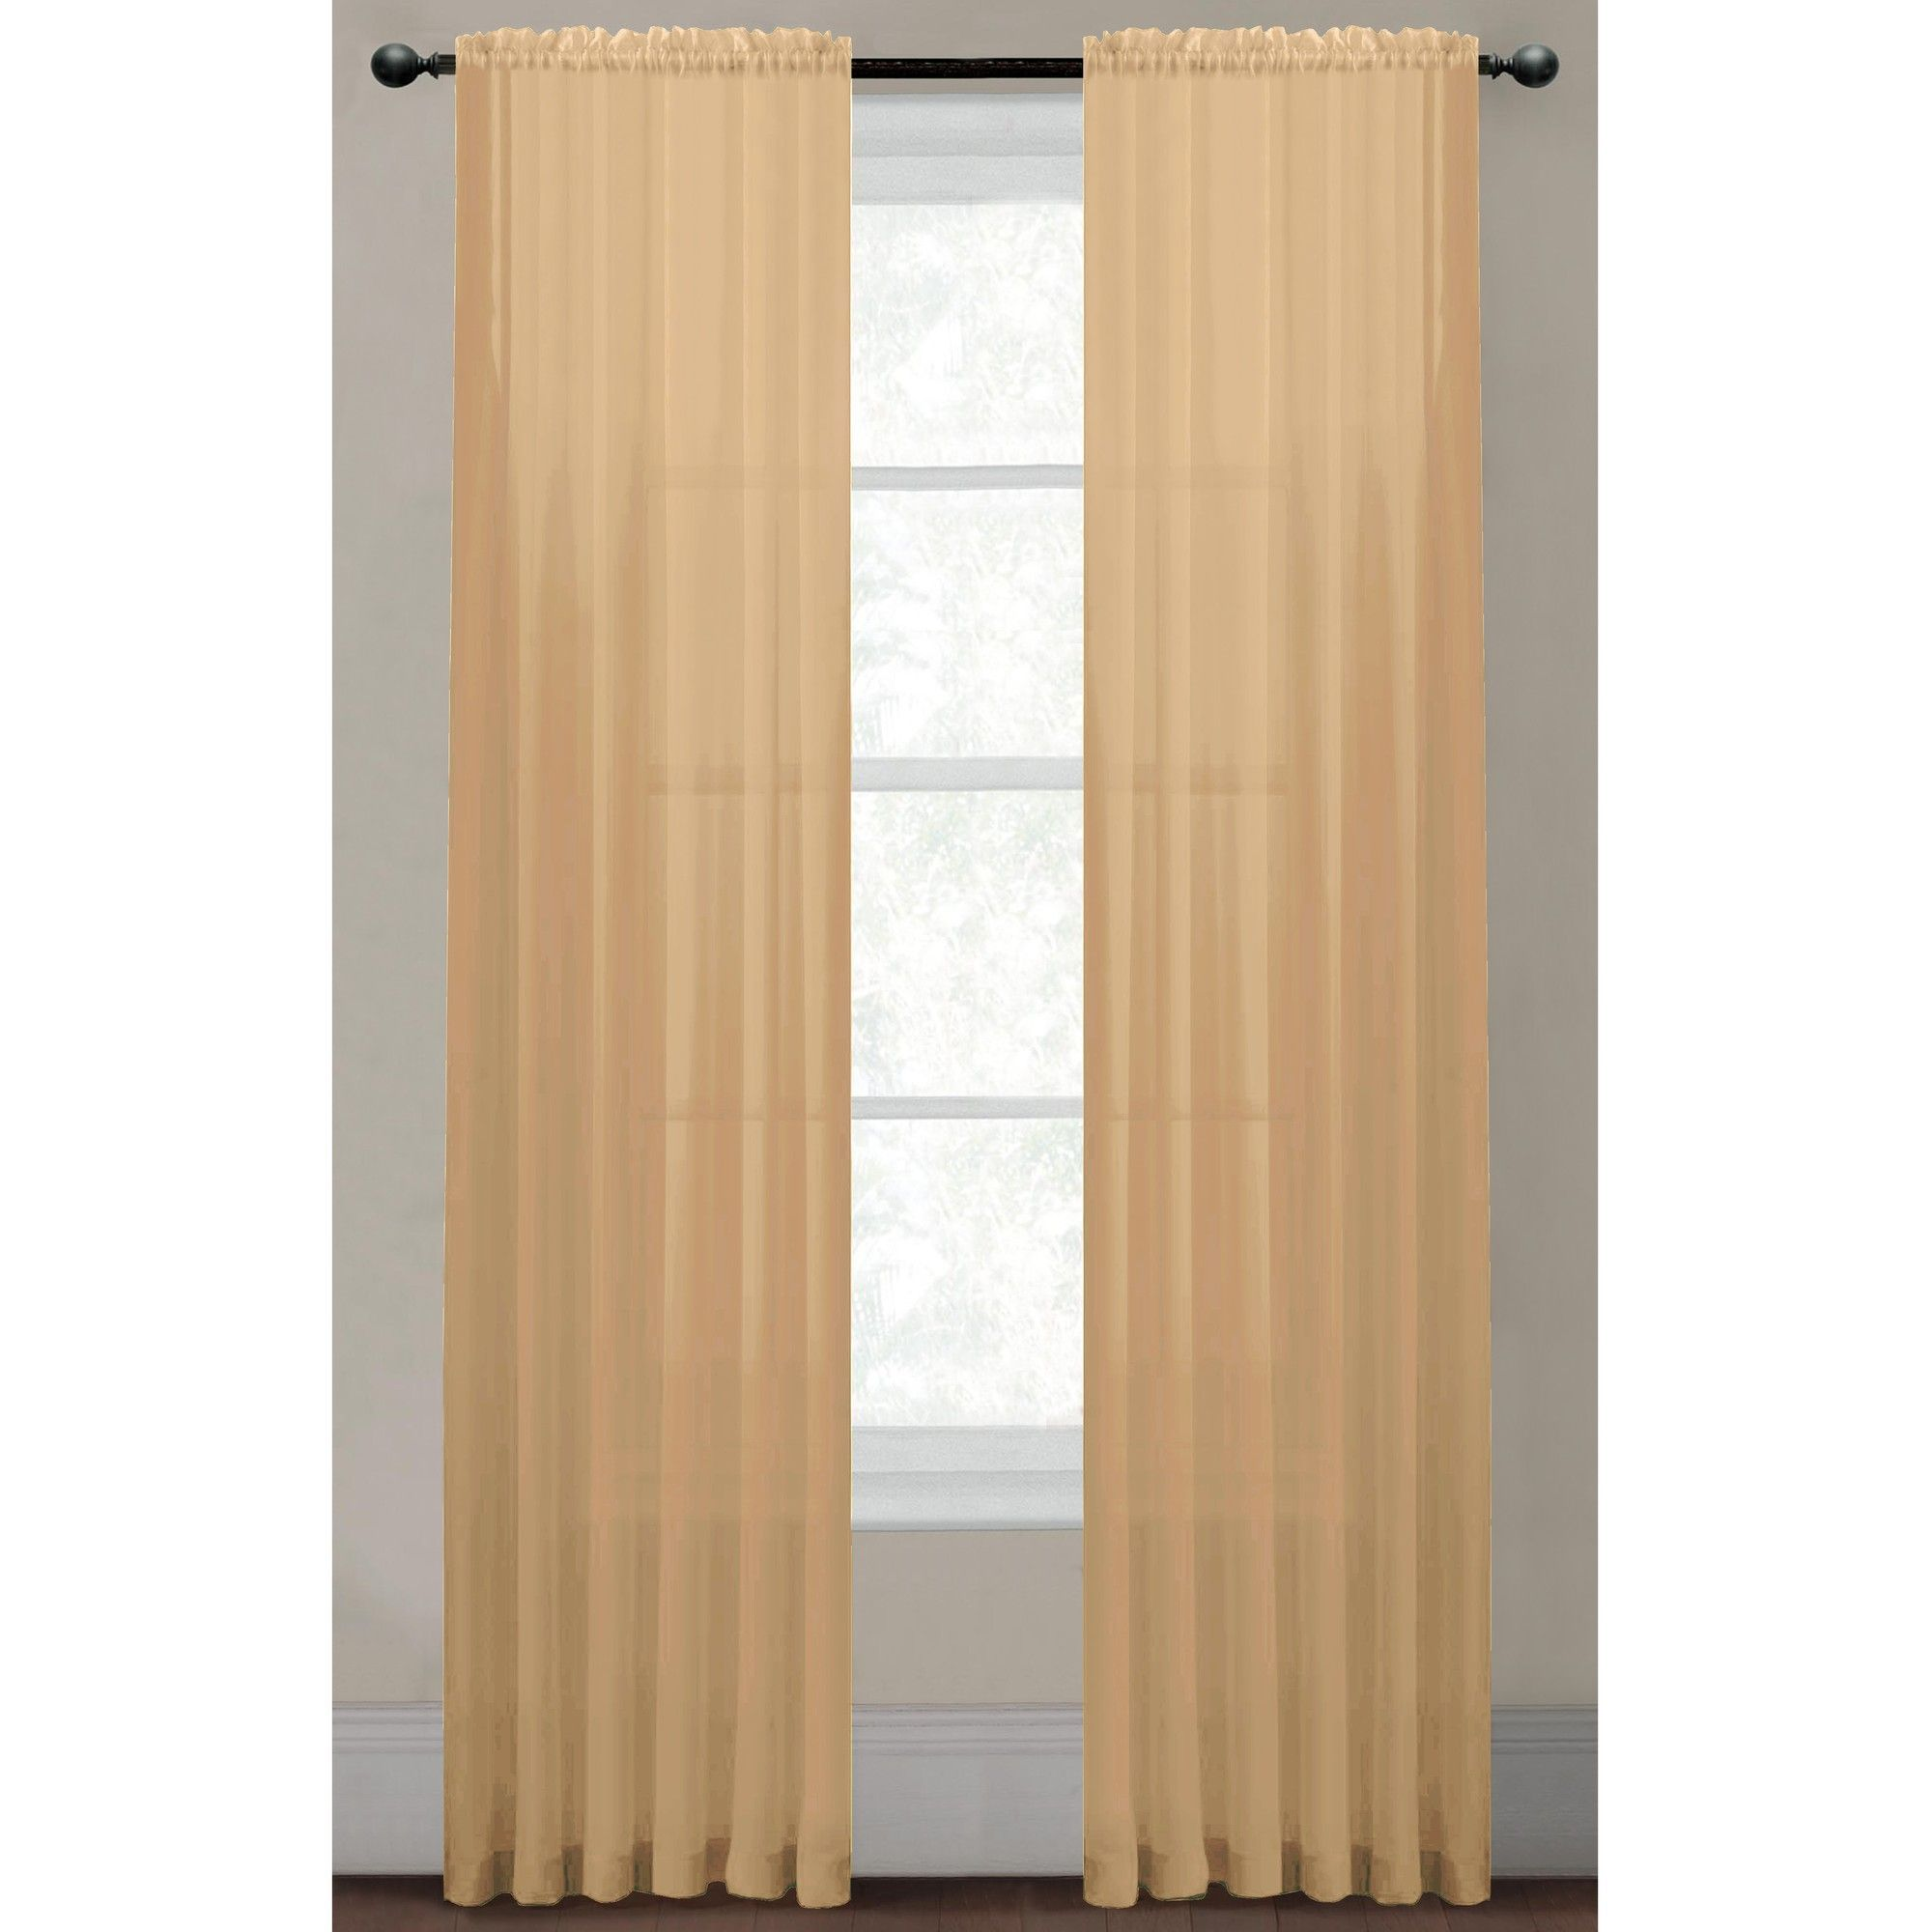 curtains extra made curtain net dunelm ready wide soozone functionalities main mill